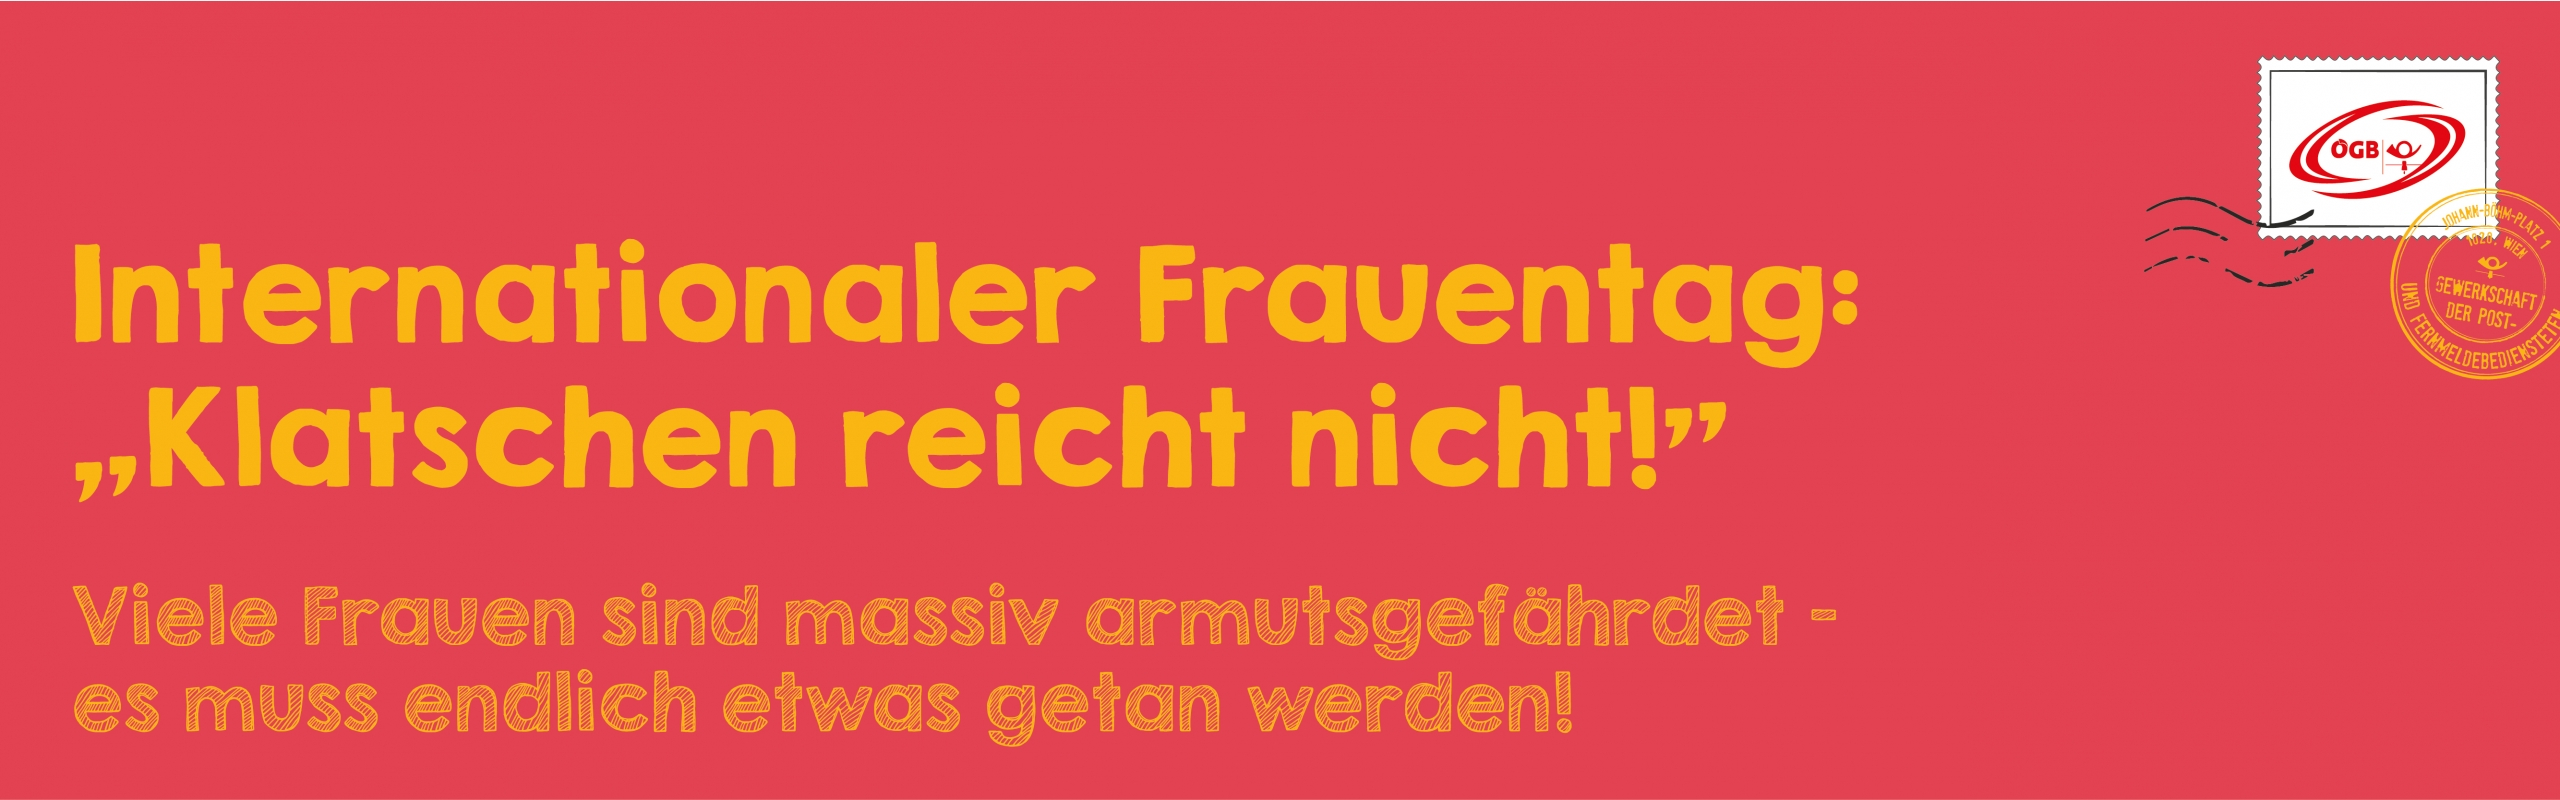 Internationaler Frauentag_Banner